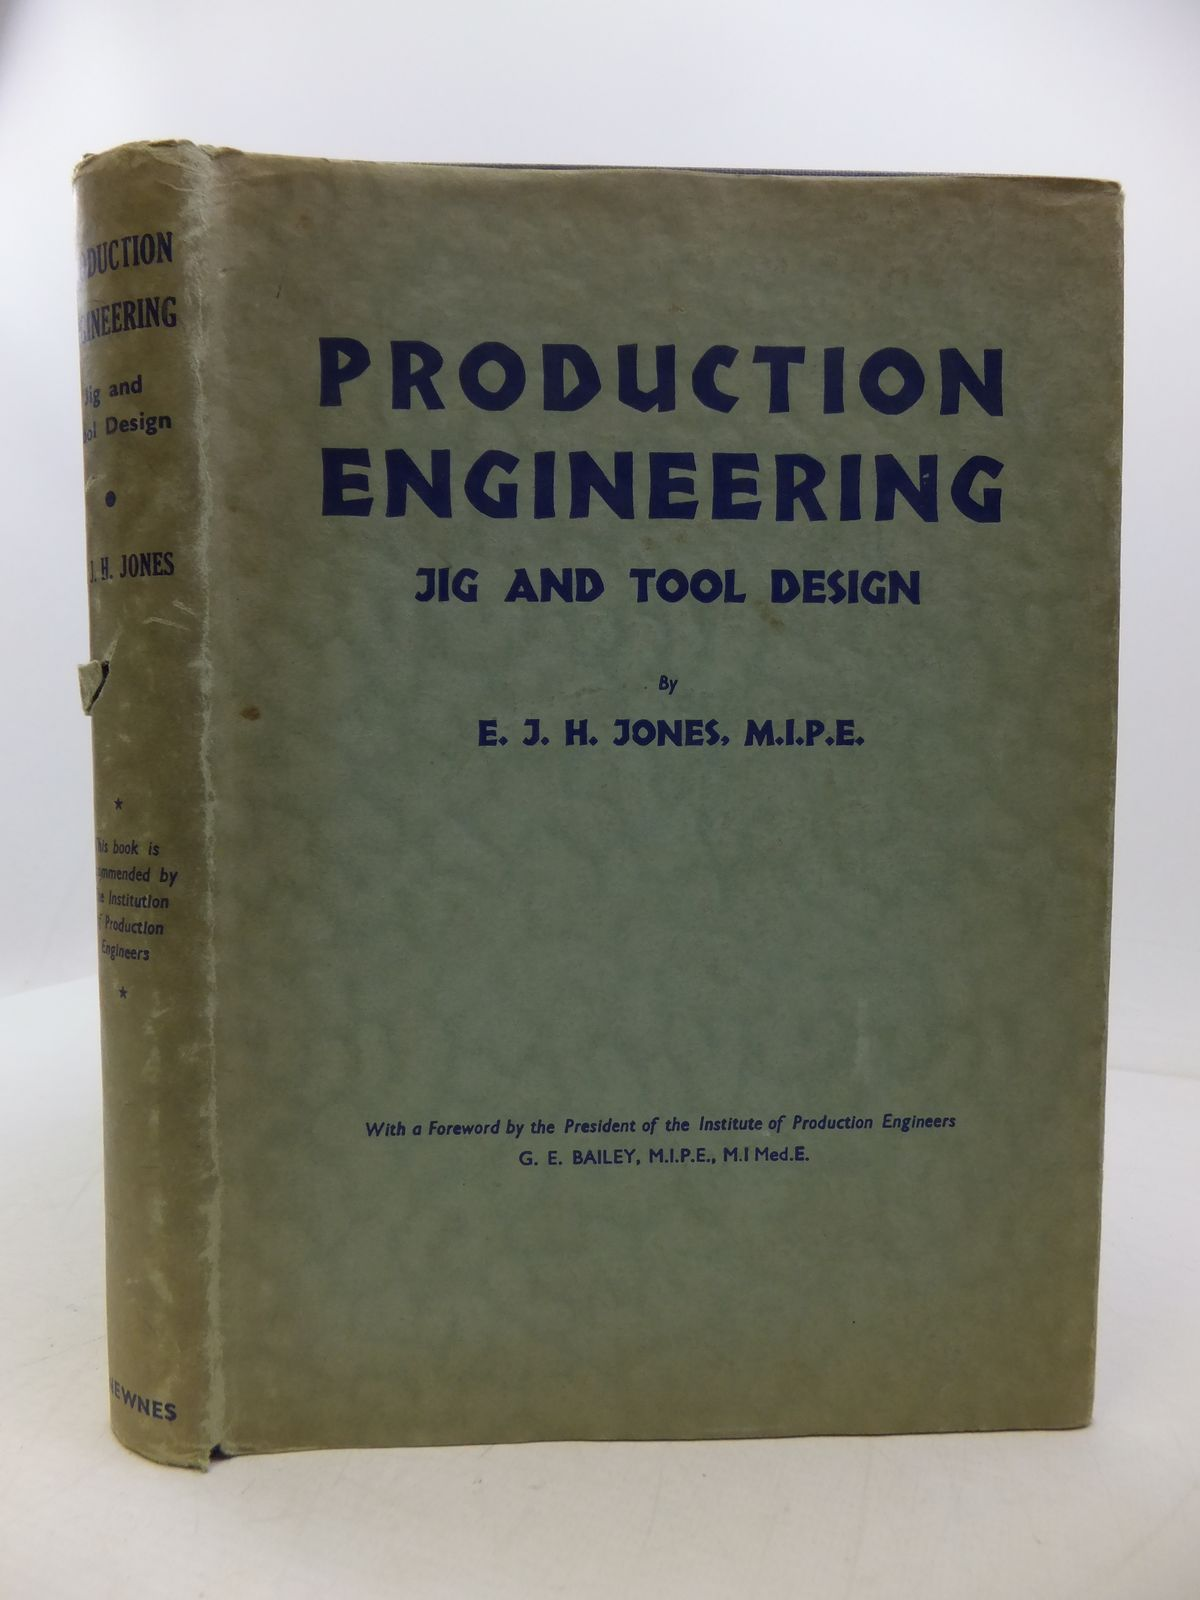 Photo of PRODUCTION ENGINEERING JIG AND TOOL DESIGN written by Jones, E.J.H. published by George Newnes Limited (STOCK CODE: 1808162)  for sale by Stella & Rose's Books